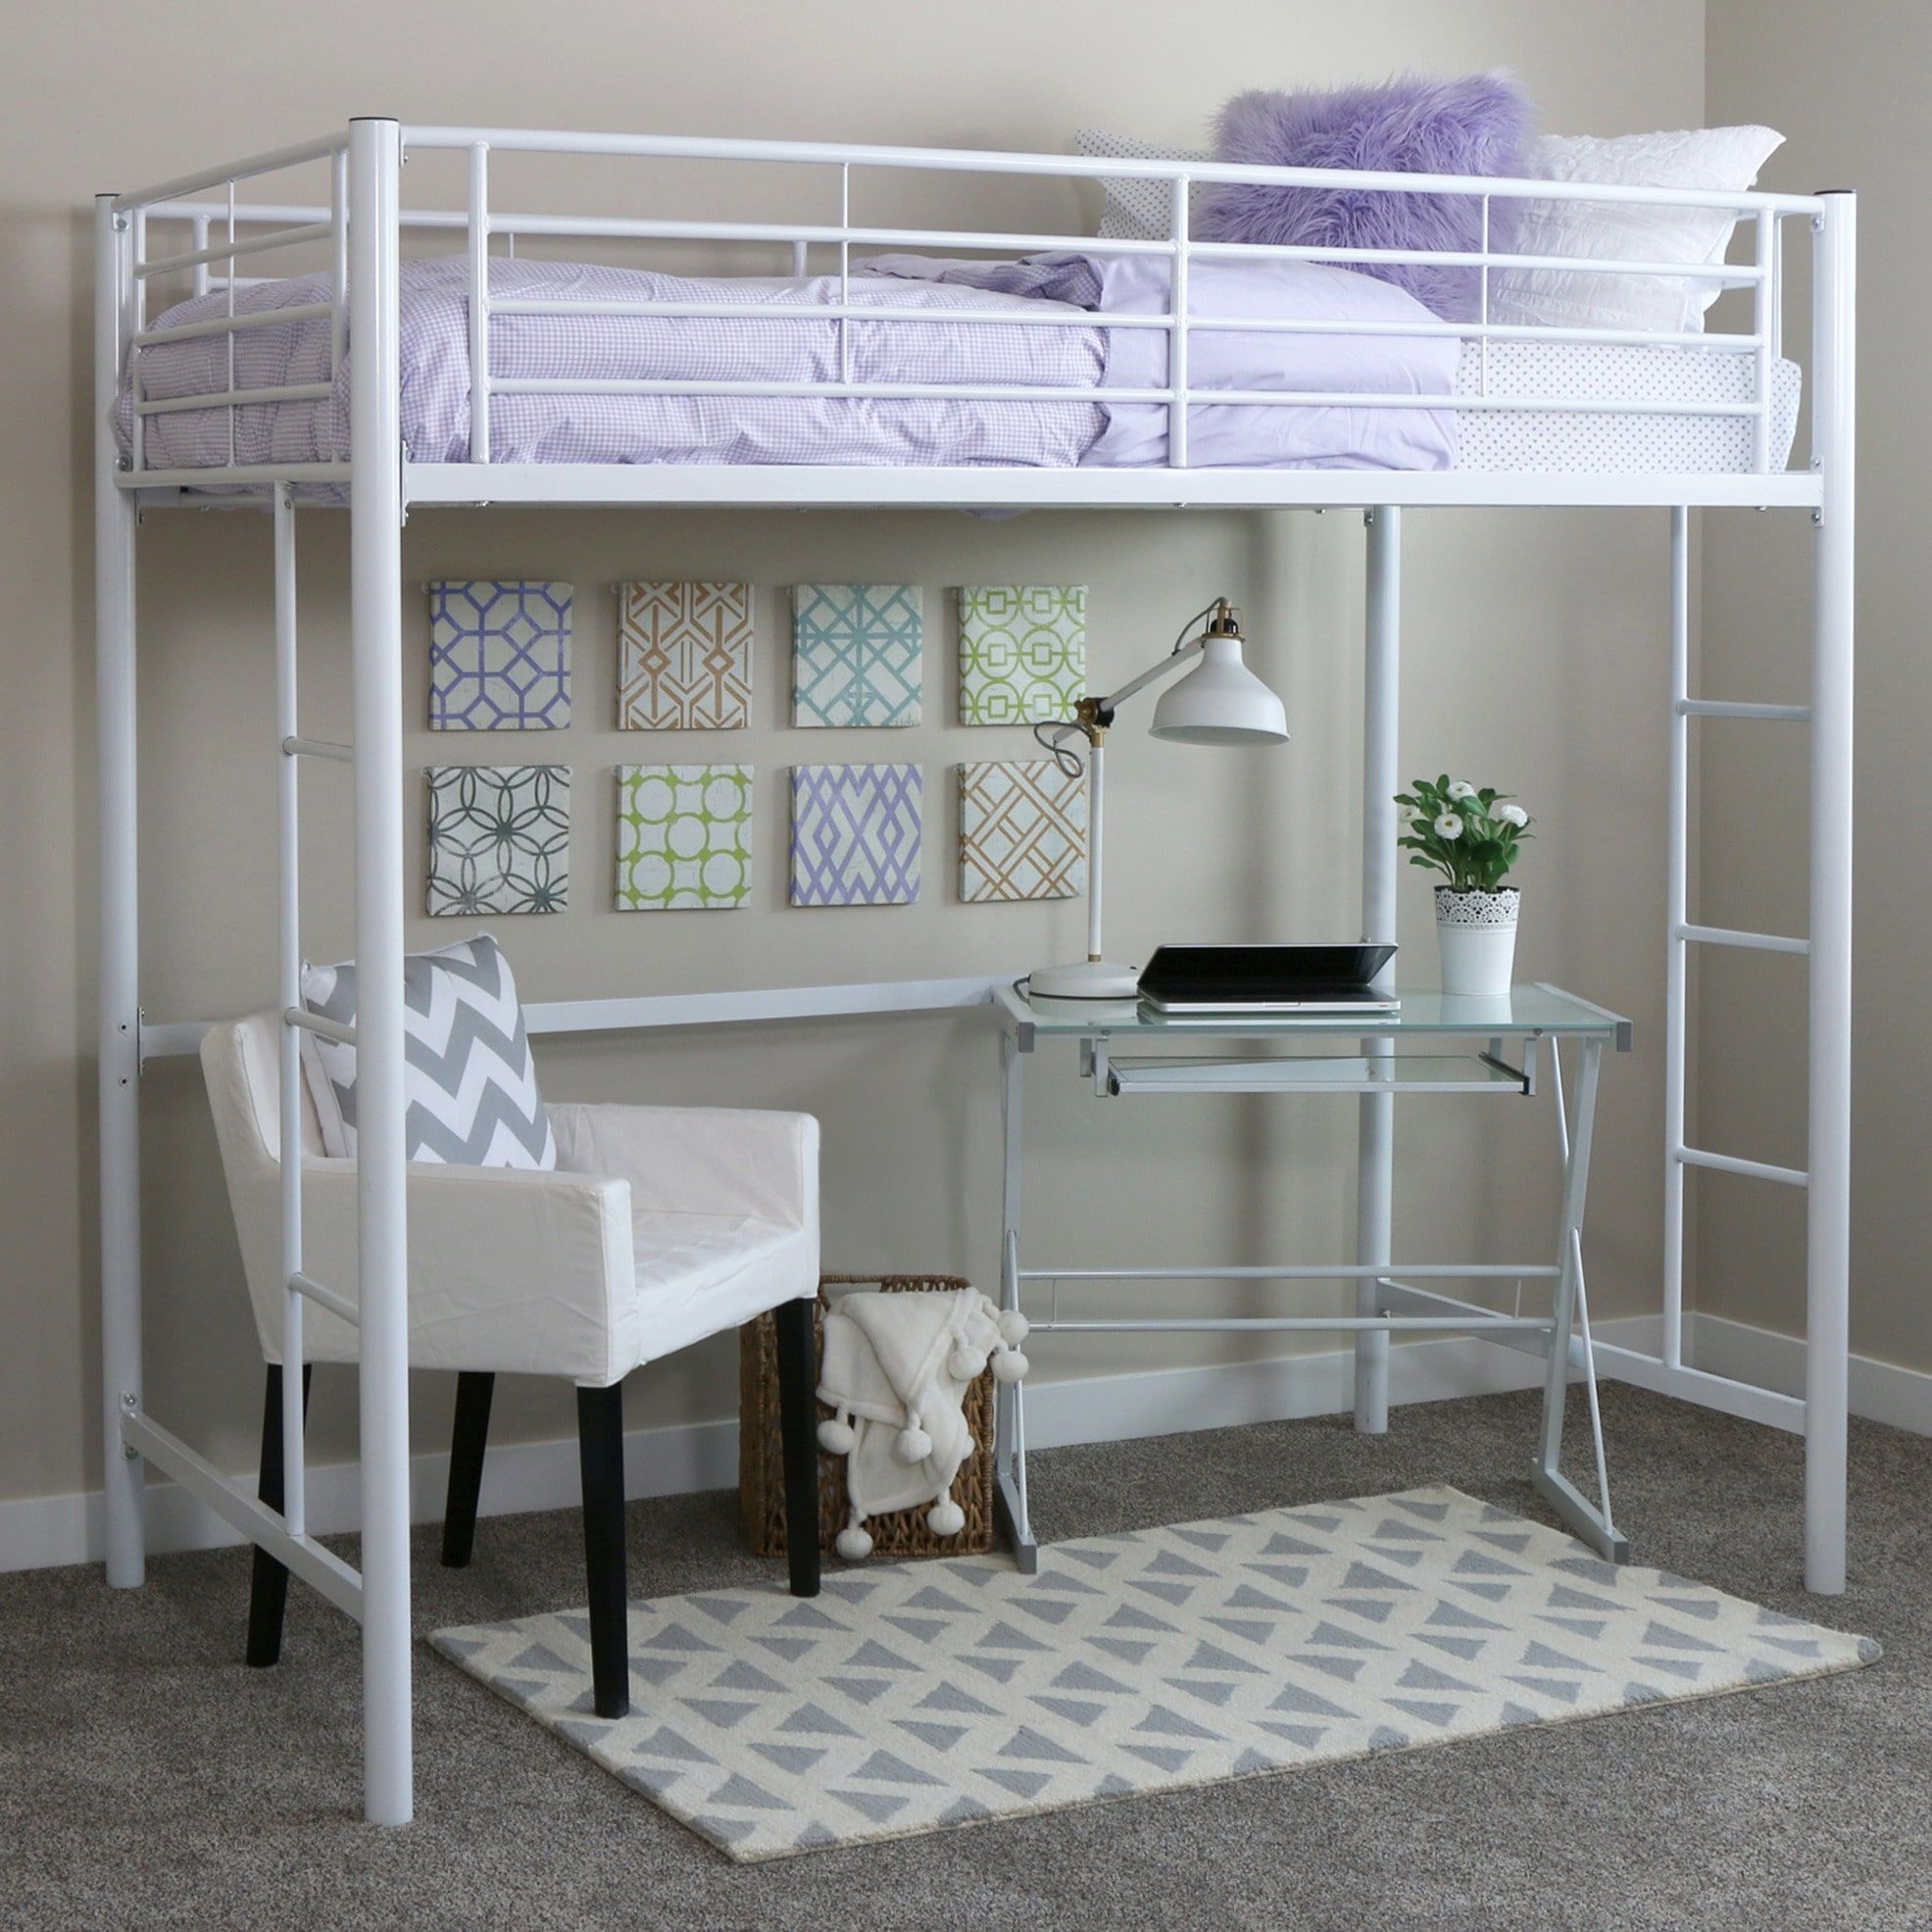 Loft over bedroom  Look no further than Overstock to shop Loft Bed with Free